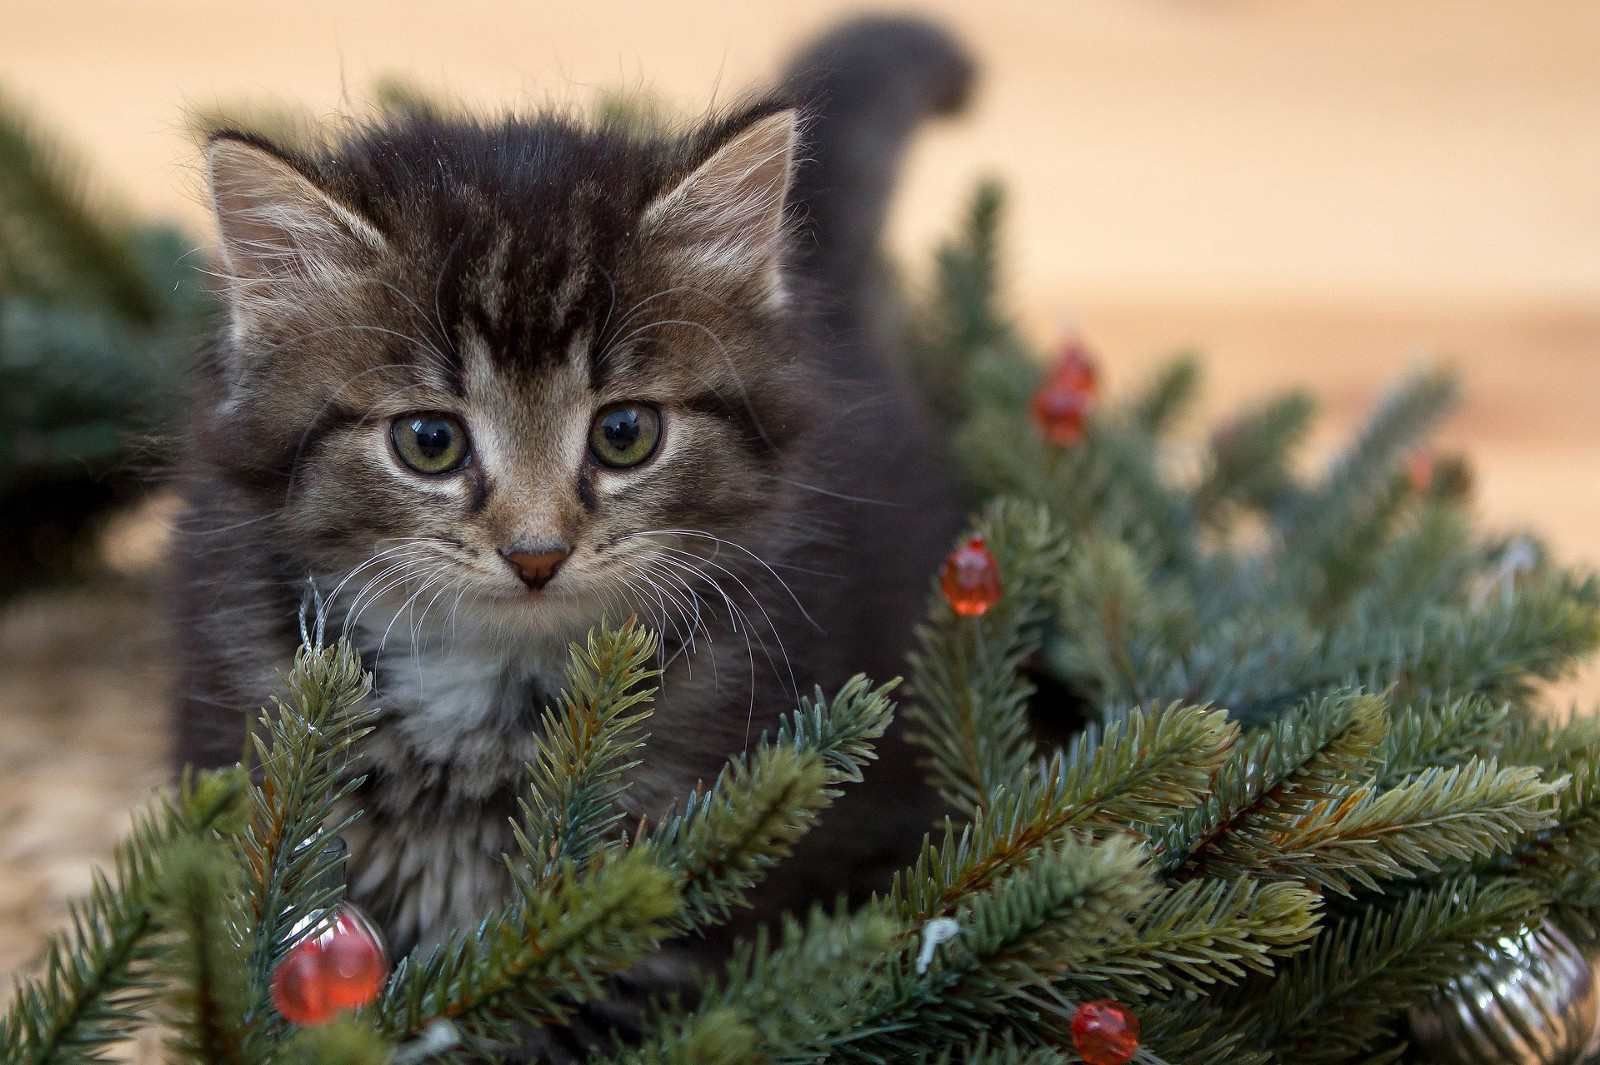 A kitten in Christmas tree branches